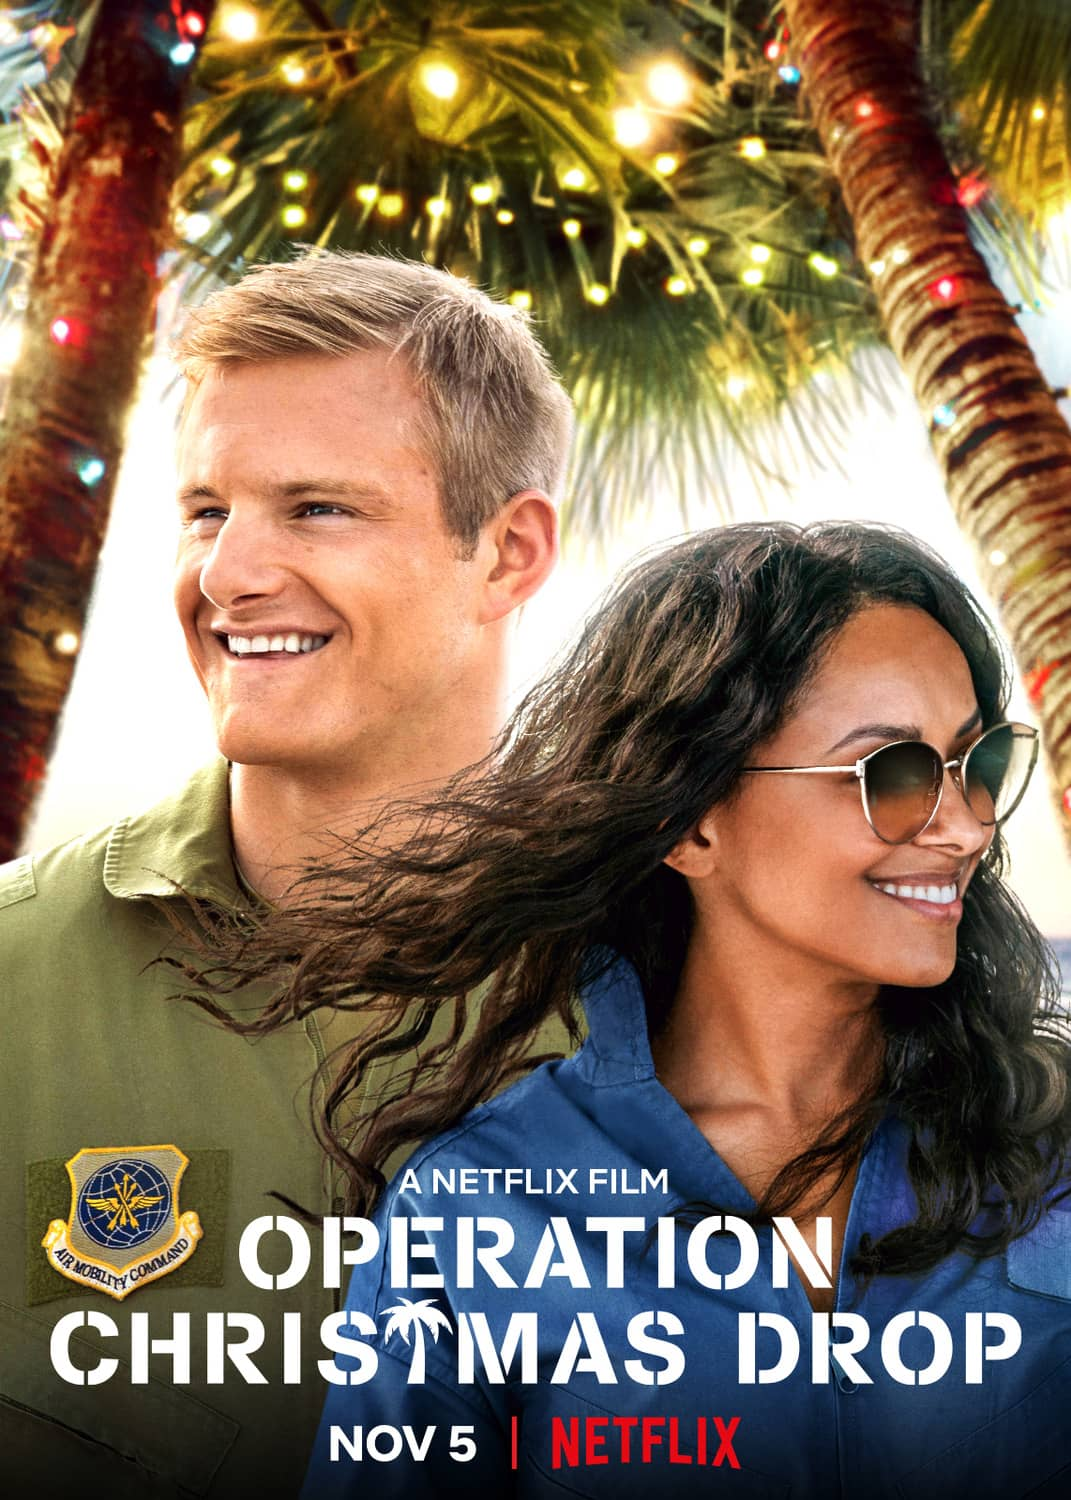 Operation Christmas Drop Poster Netflix